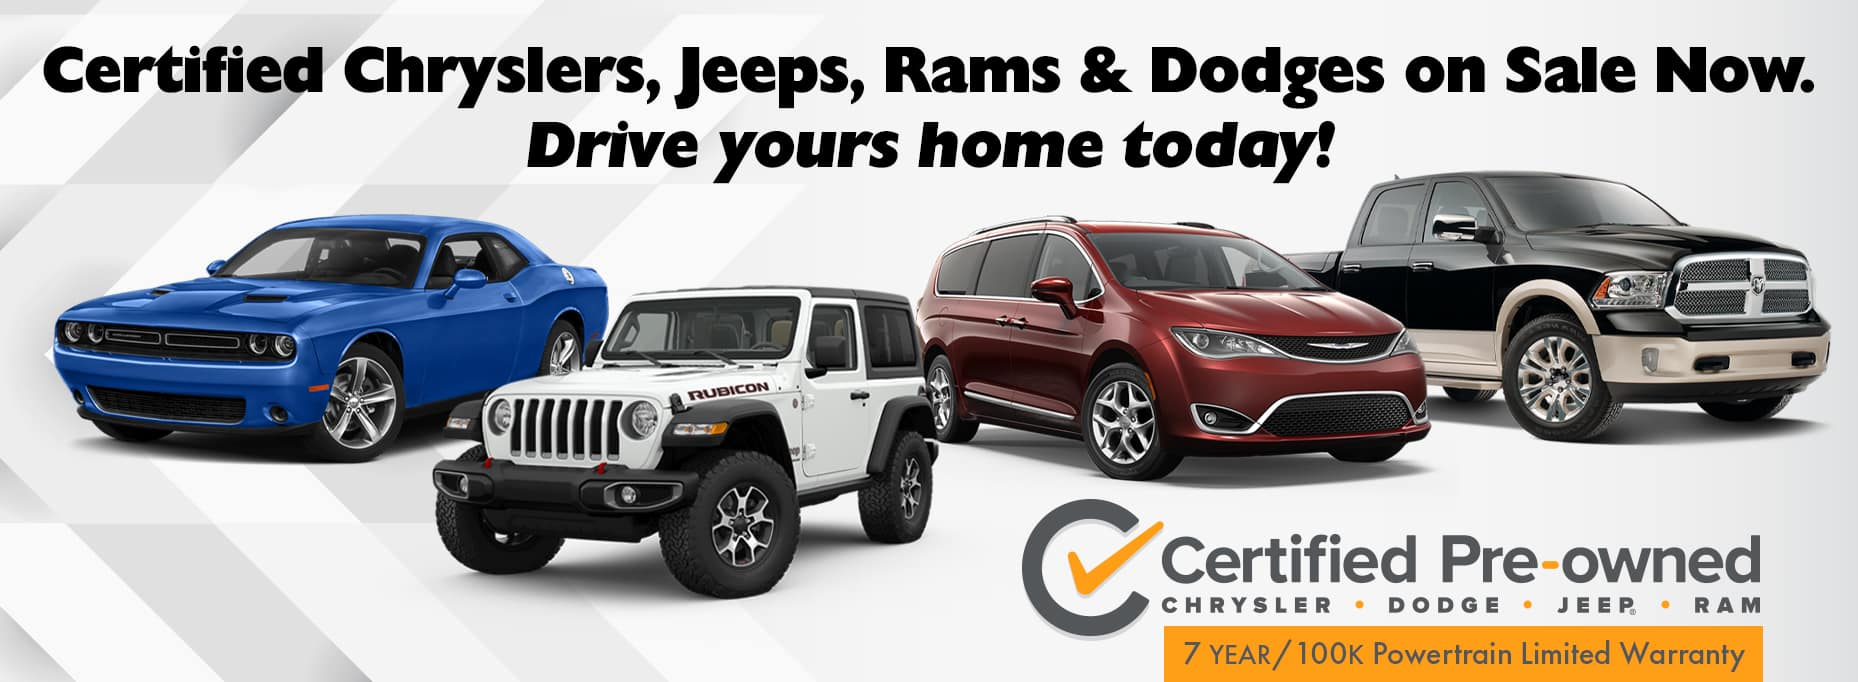 St. Charles CJDR Certified Pre-Owned Vehicles